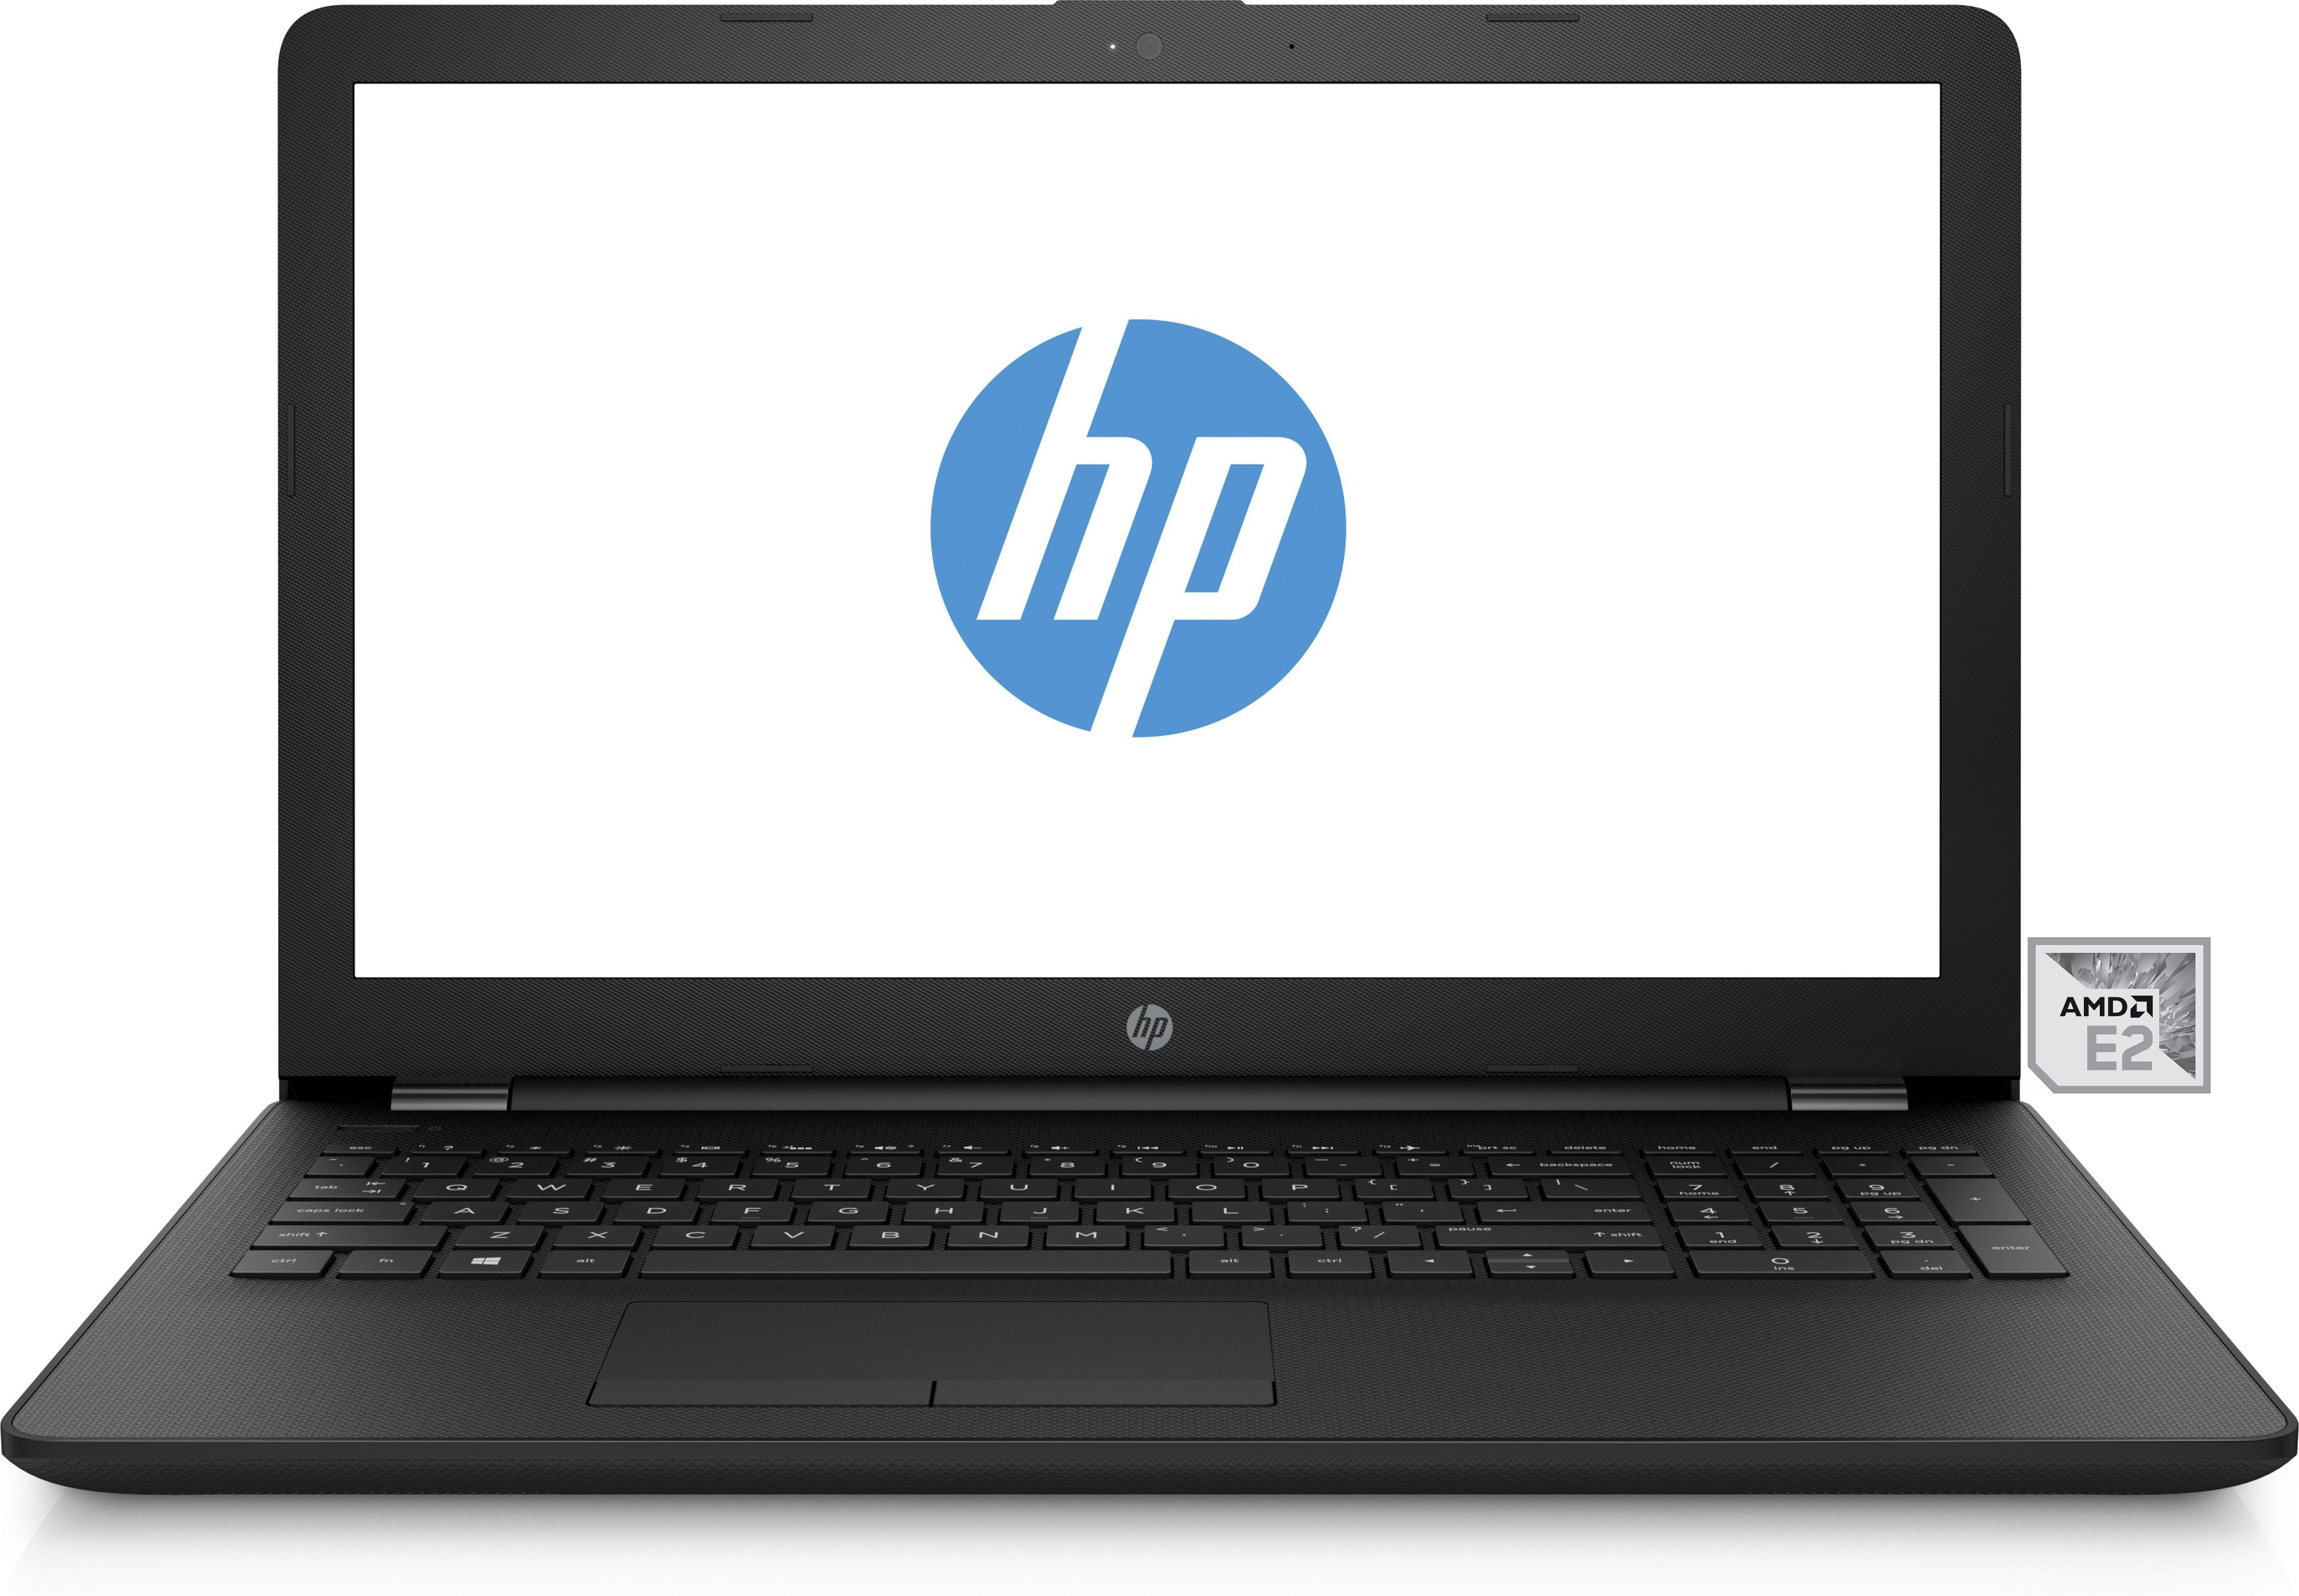 "HP 15-bw049ng Notebook »AMD E2, 39,6cm (15,6""), 500GB, 4 GB, Free DOS 2.0«"